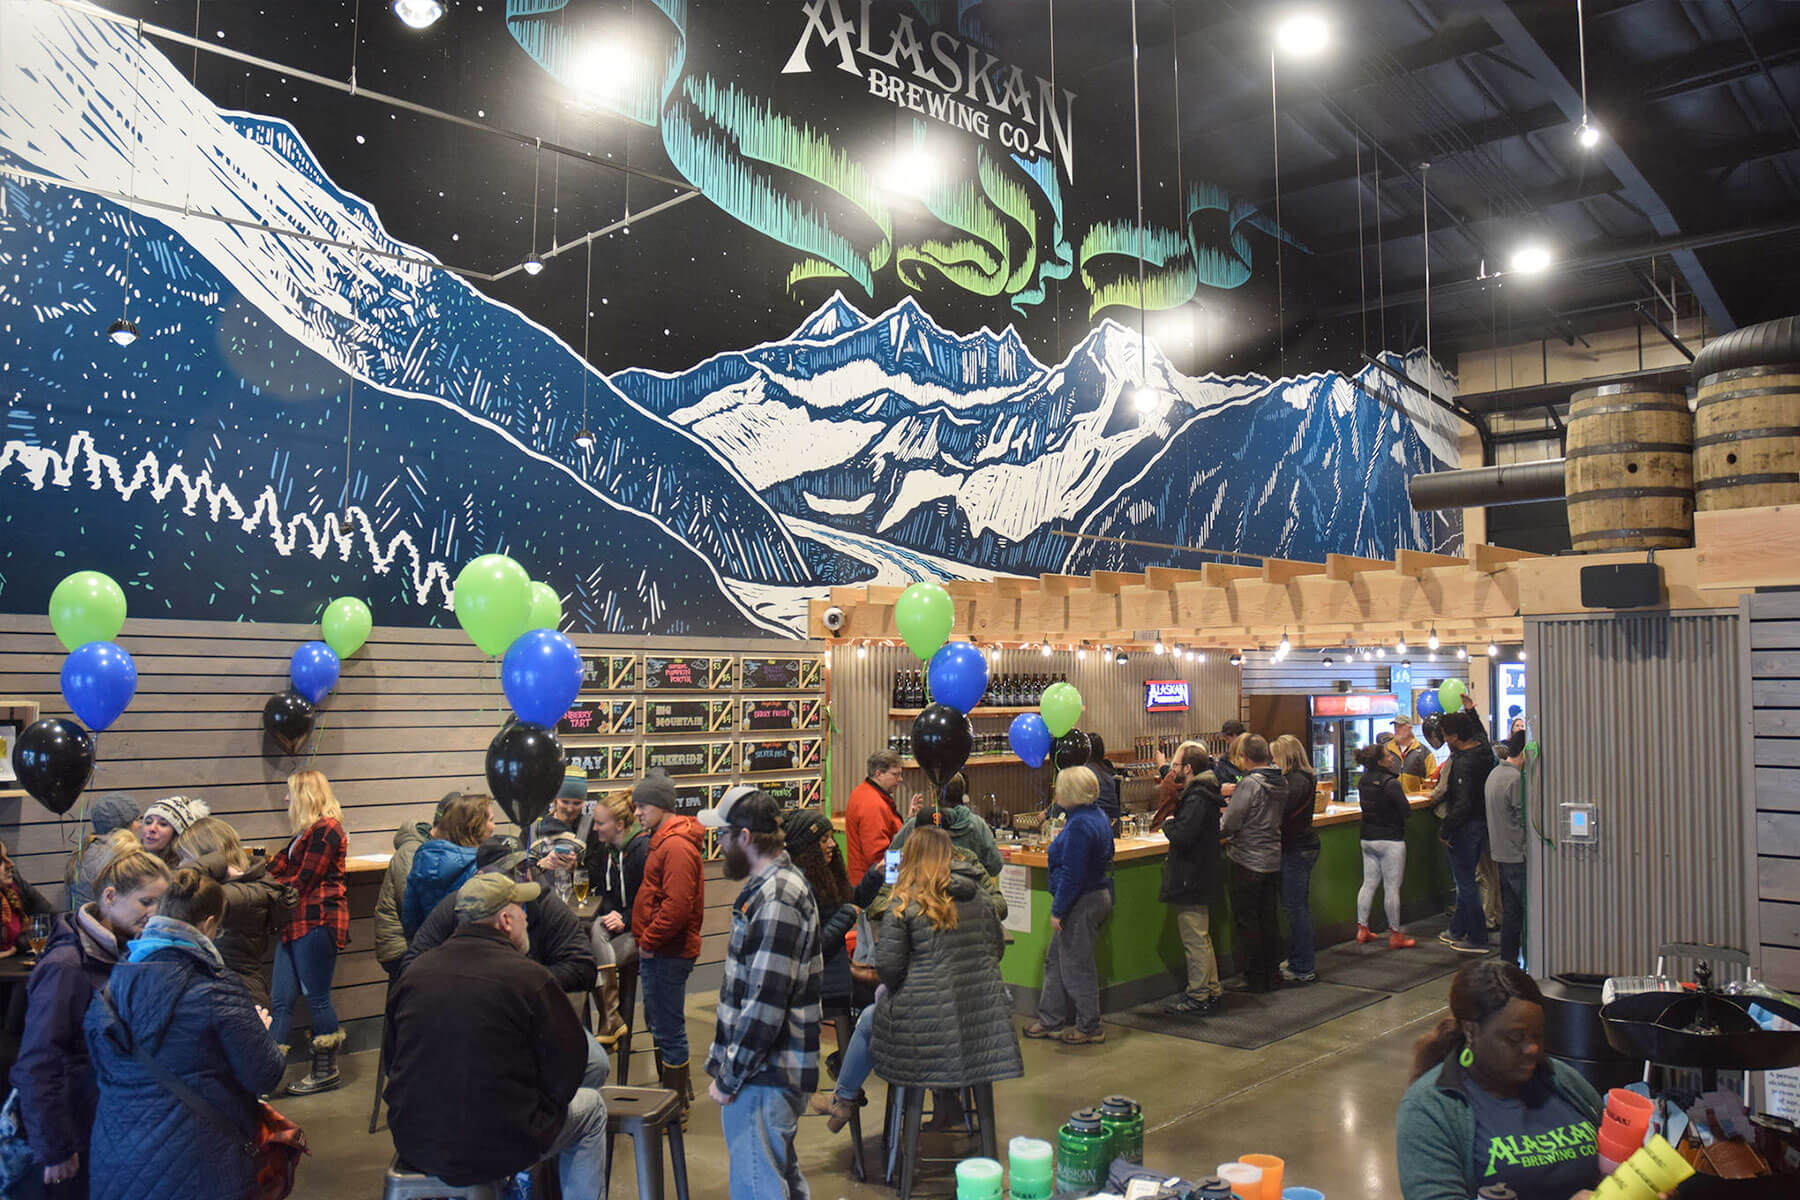 Inside the Tap Room at Alaskan Brewing Co. in Juneau, Alaska